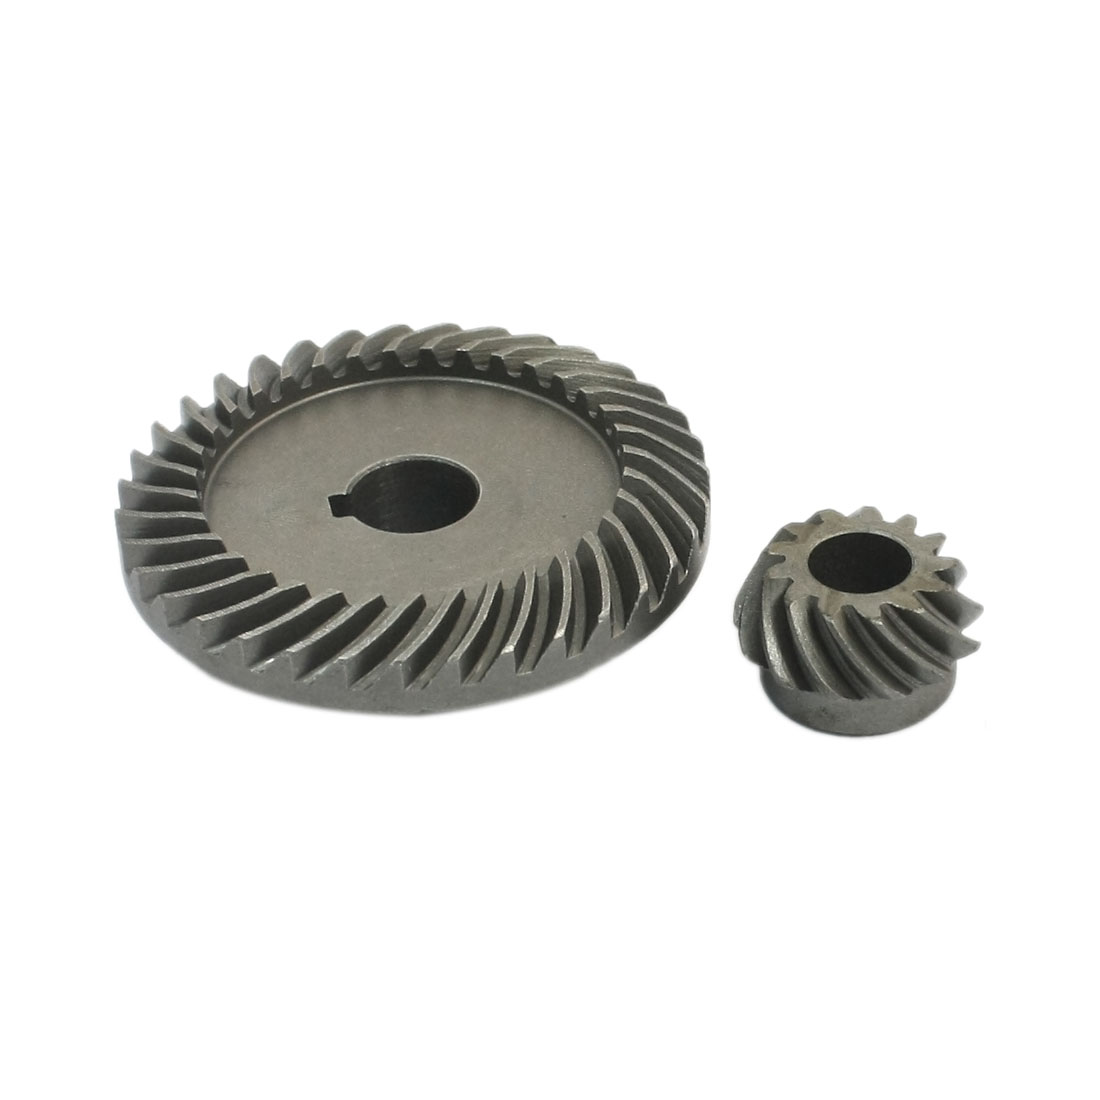 2 Set Power Tool Spiral Bevel Gear for LG 100 Angle Grinder